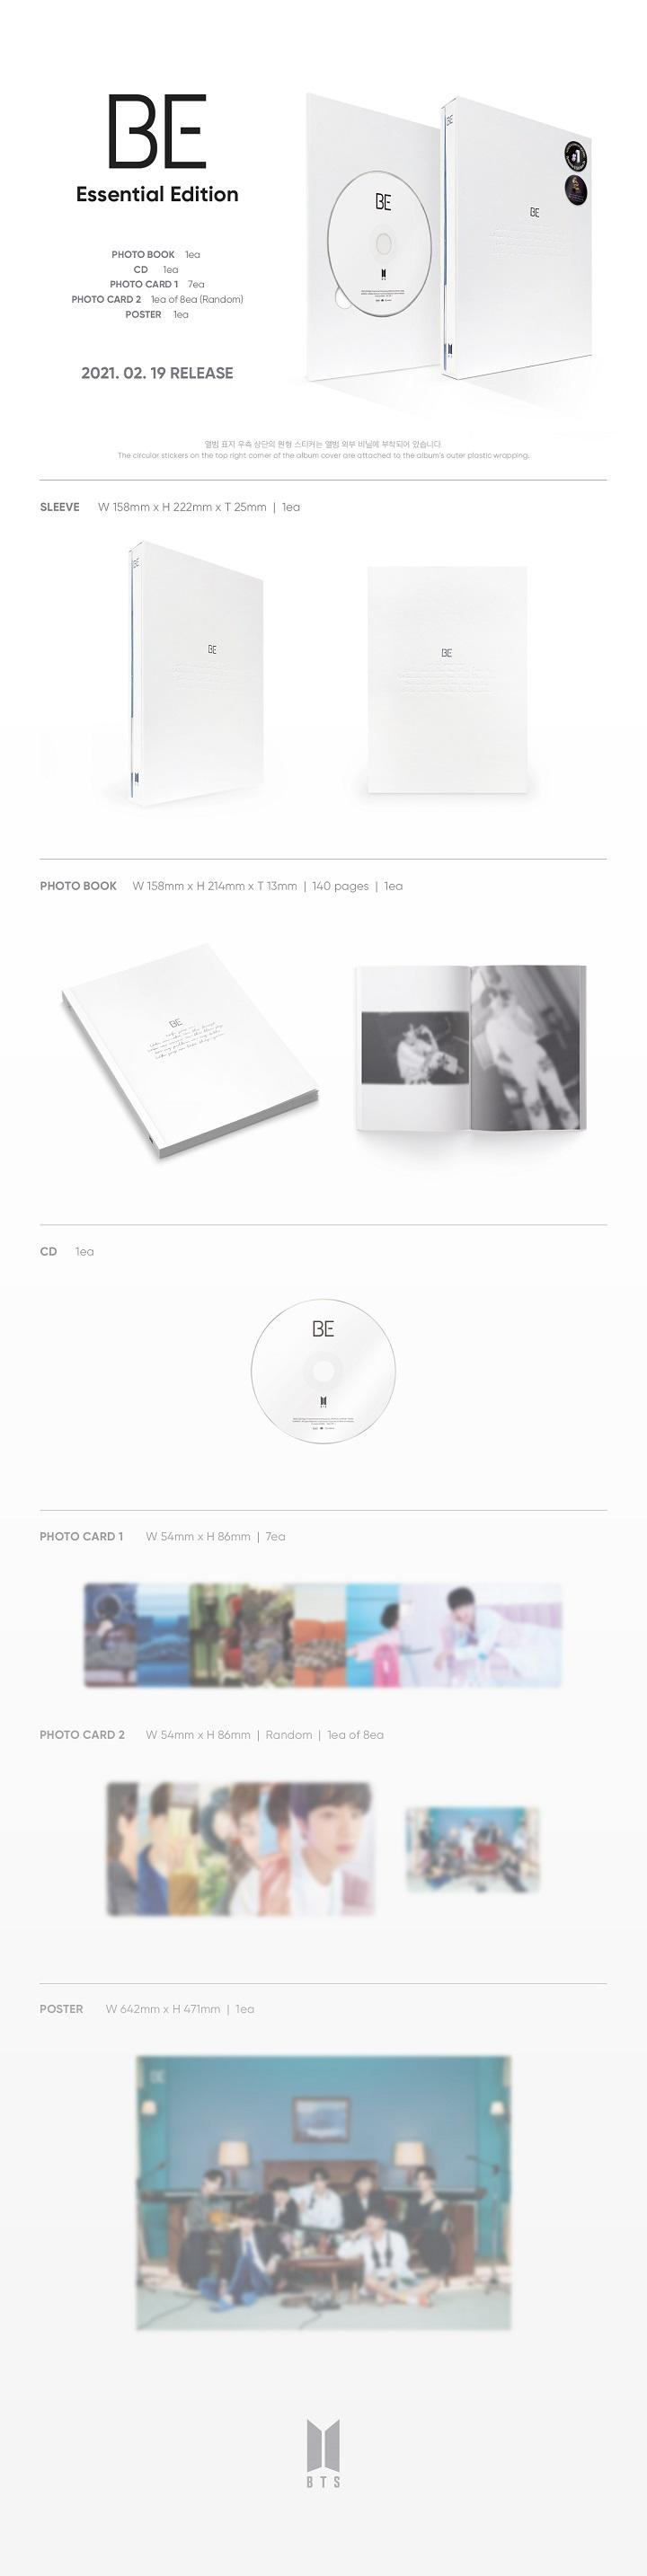 BTS - BE (Essential Edition)  + Weverse Gift